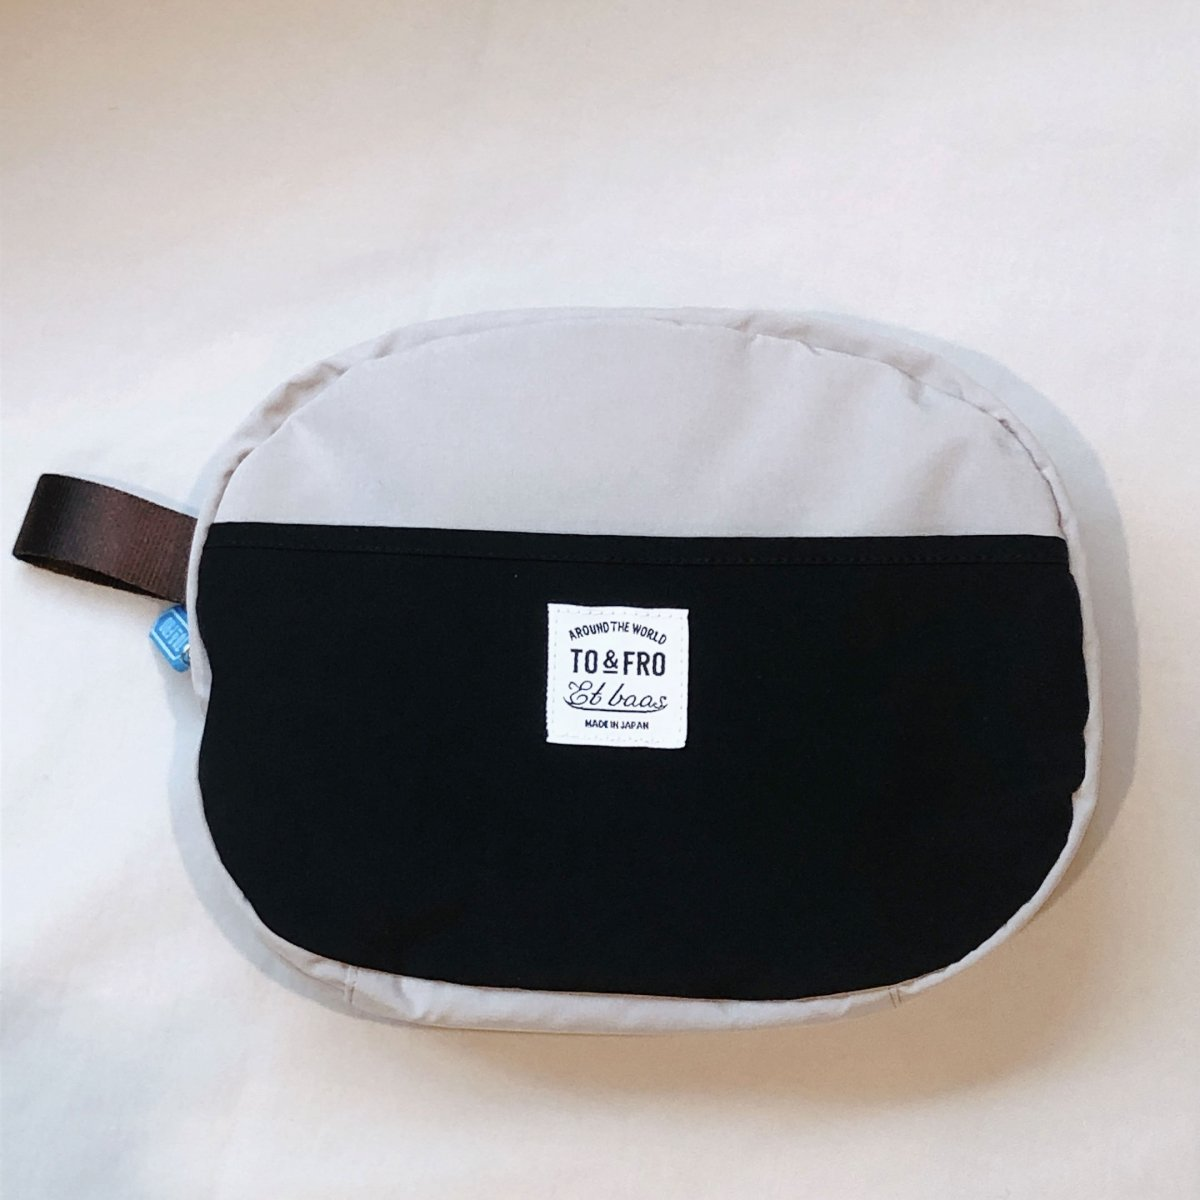 One mile POUCH(Et baas x TO&FRO) 詳細画像1